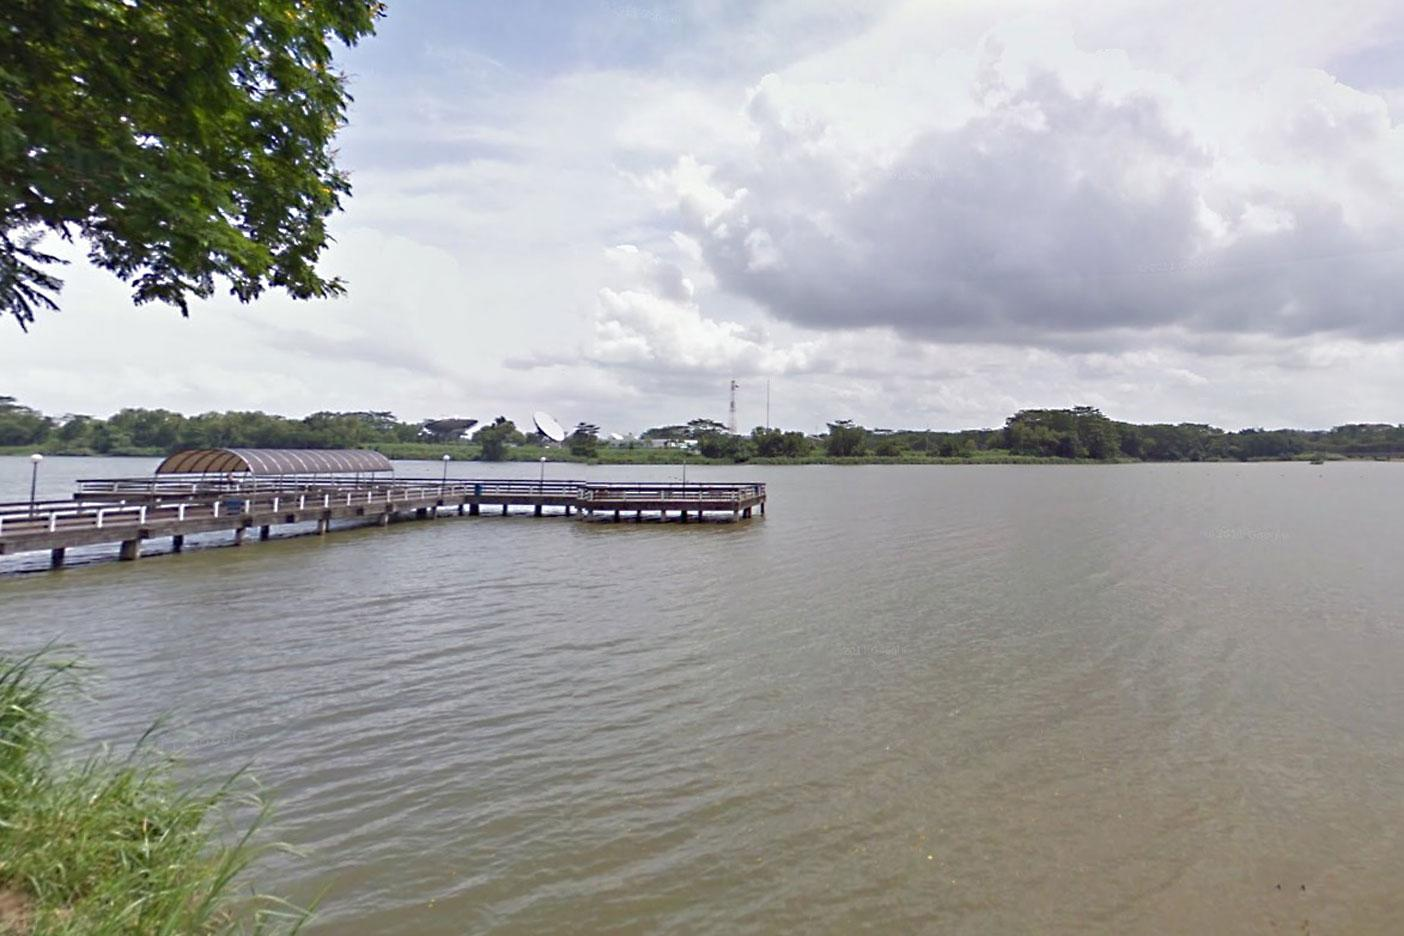 Crocodile spotted at Lower Seletar Reservoir, water and fishing activities suspended: PUB